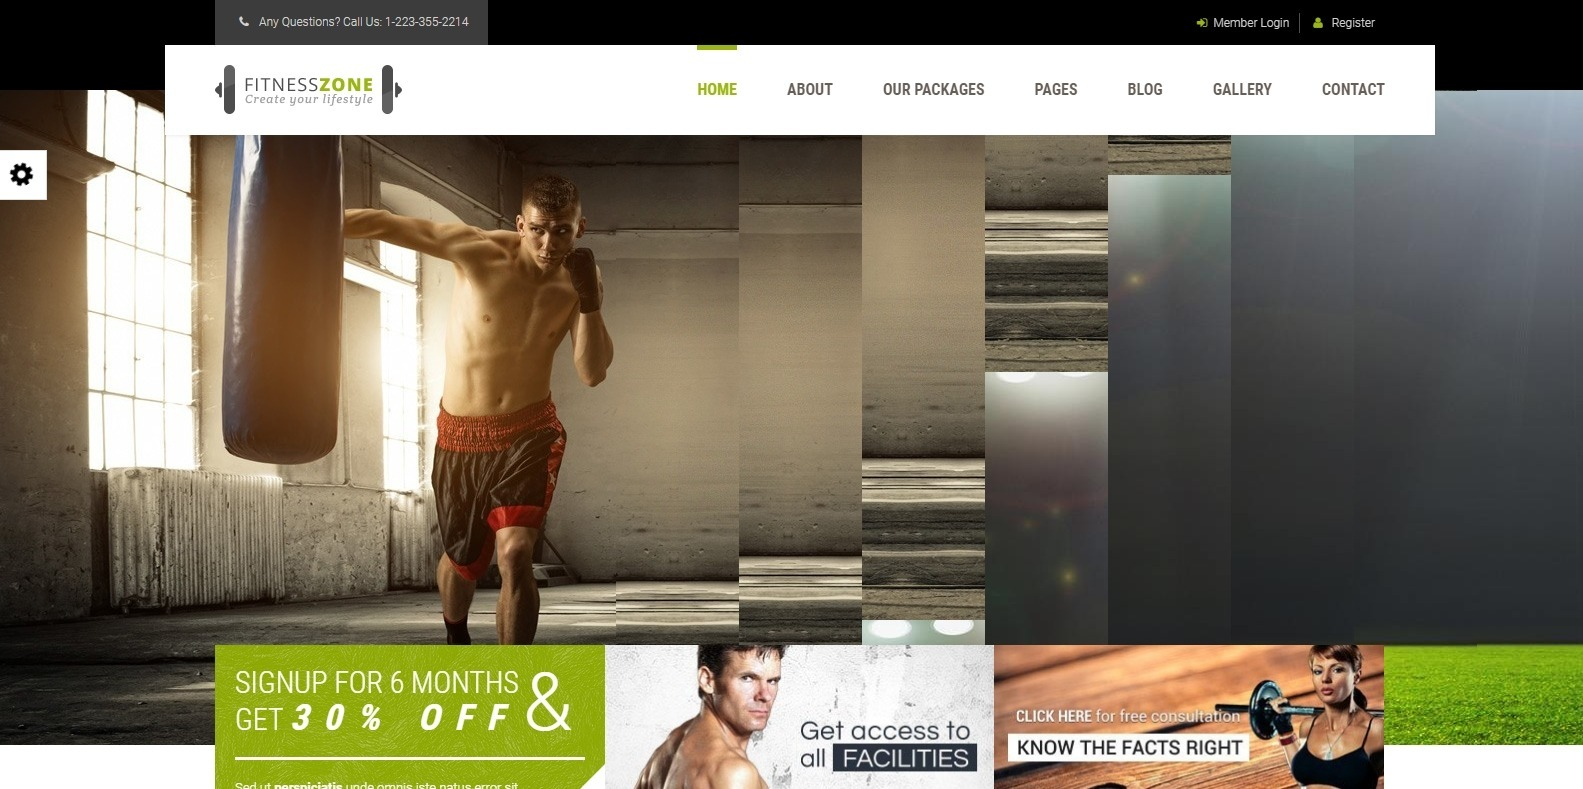 fitneszone-sports-website-template